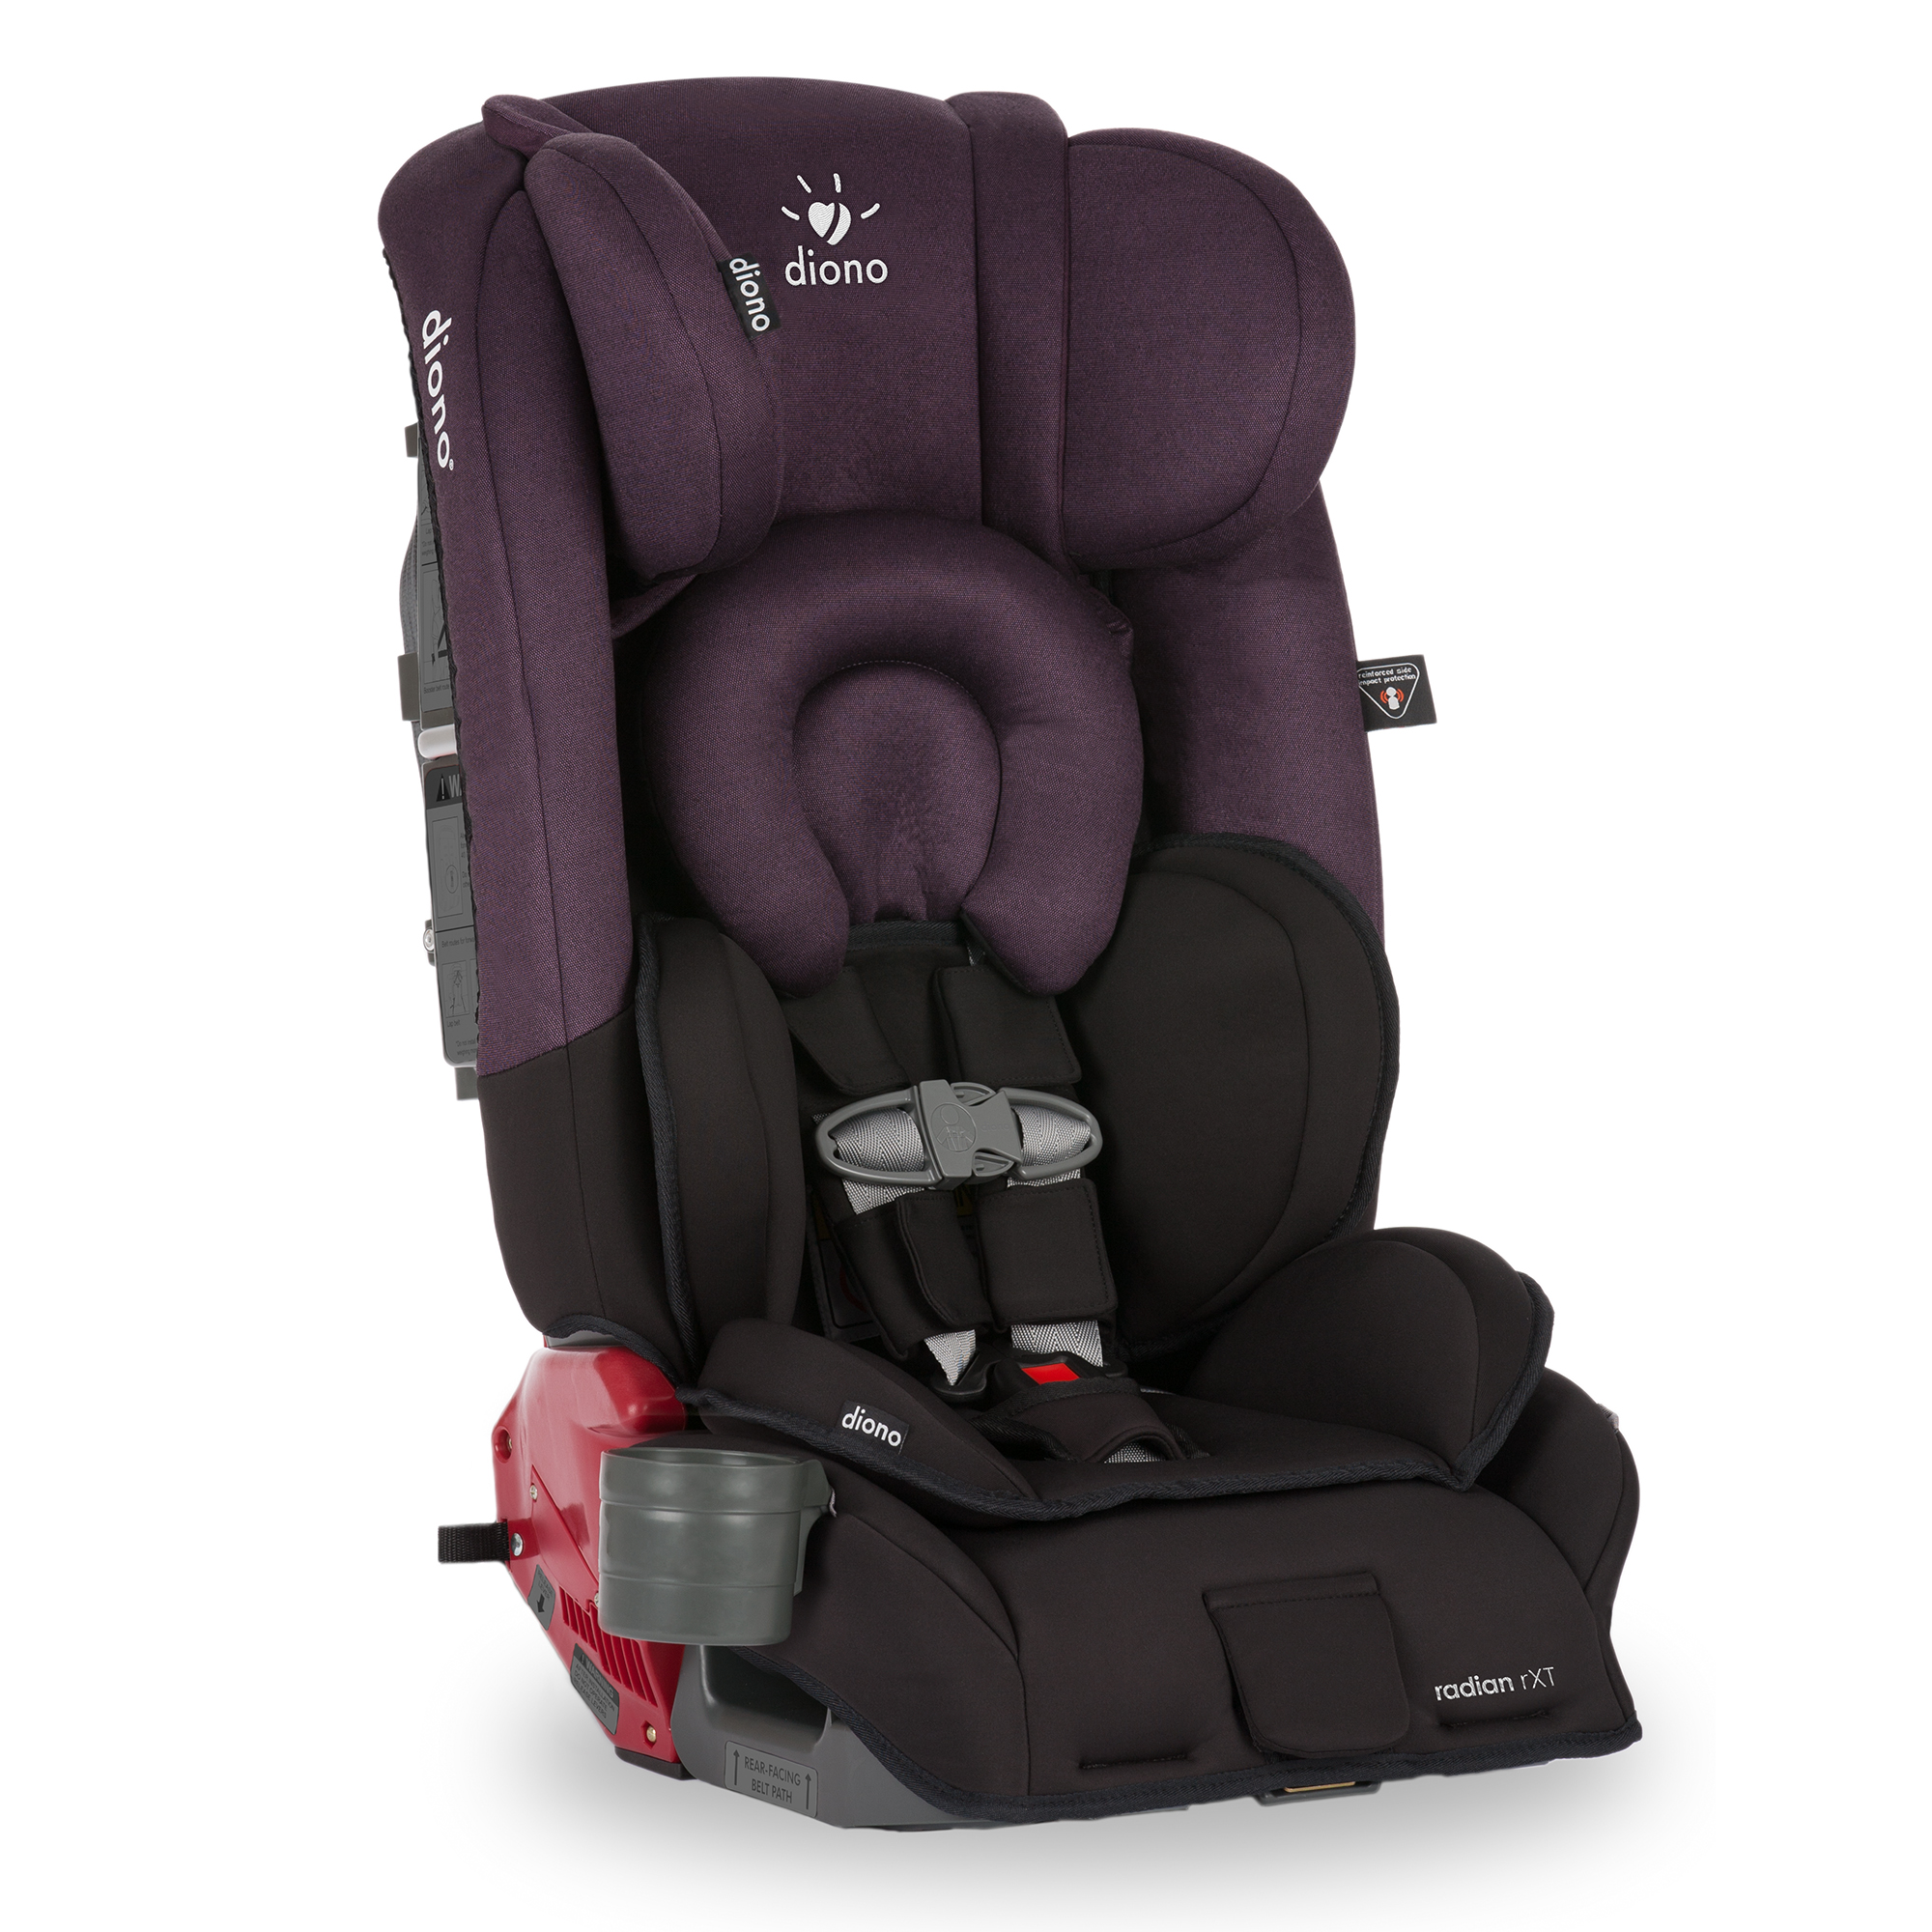 Diono Radian RXT All-in-One Car Seat, Black Mist by Diono